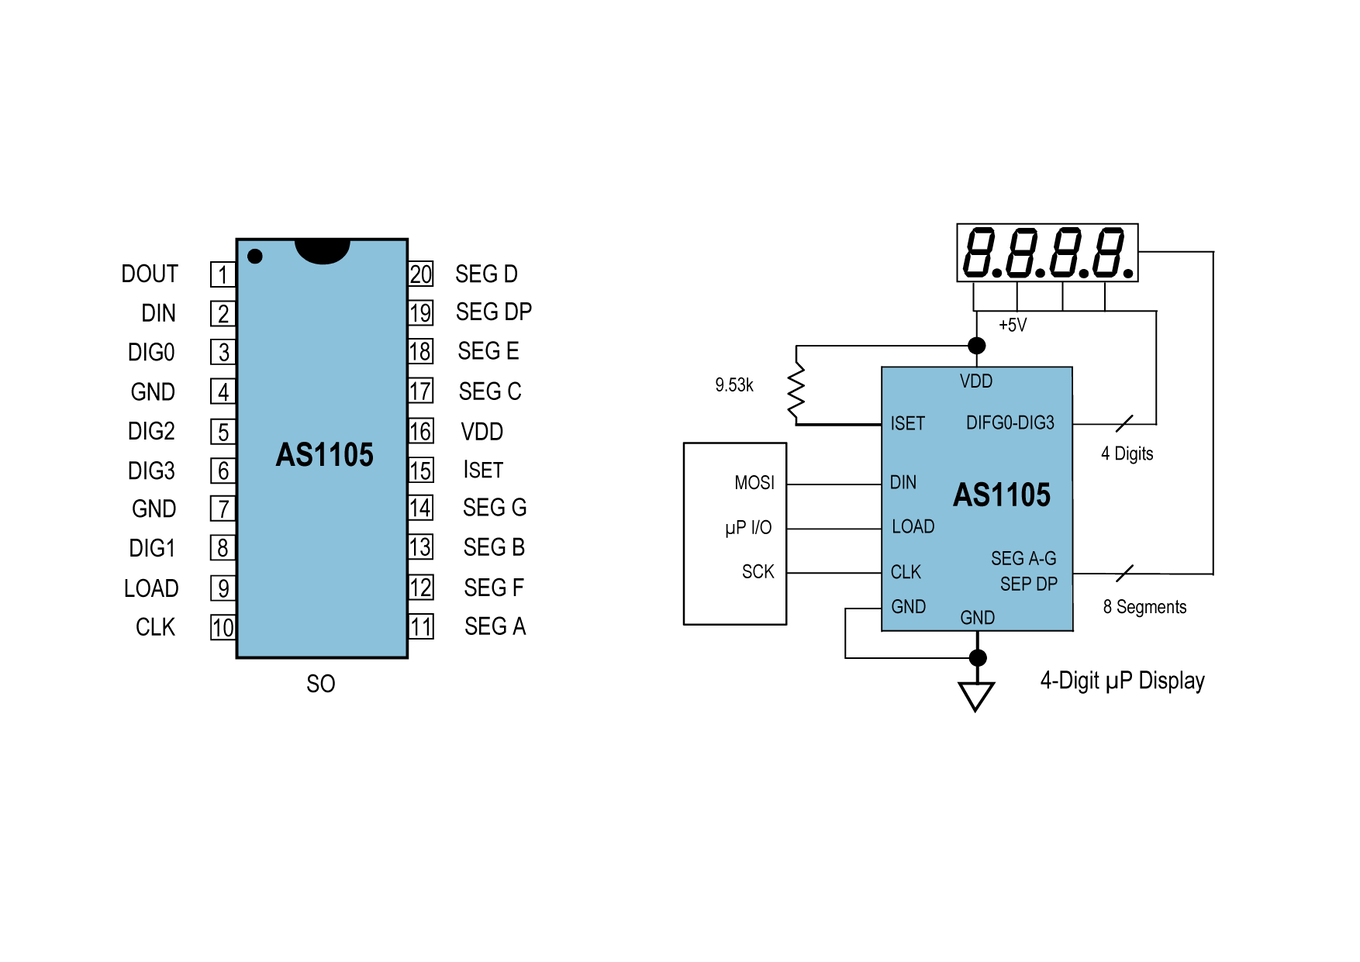 As1105 Led Dot Matrix Driver For 32leds Or Four 7 Segment Digits Bcd To Sevensegment Decoder With A Seven Display 4x8 4 Leds It Includes Bit Pwm The Entire And An External Resistor Can Be Used Analog Current Adjustment Up